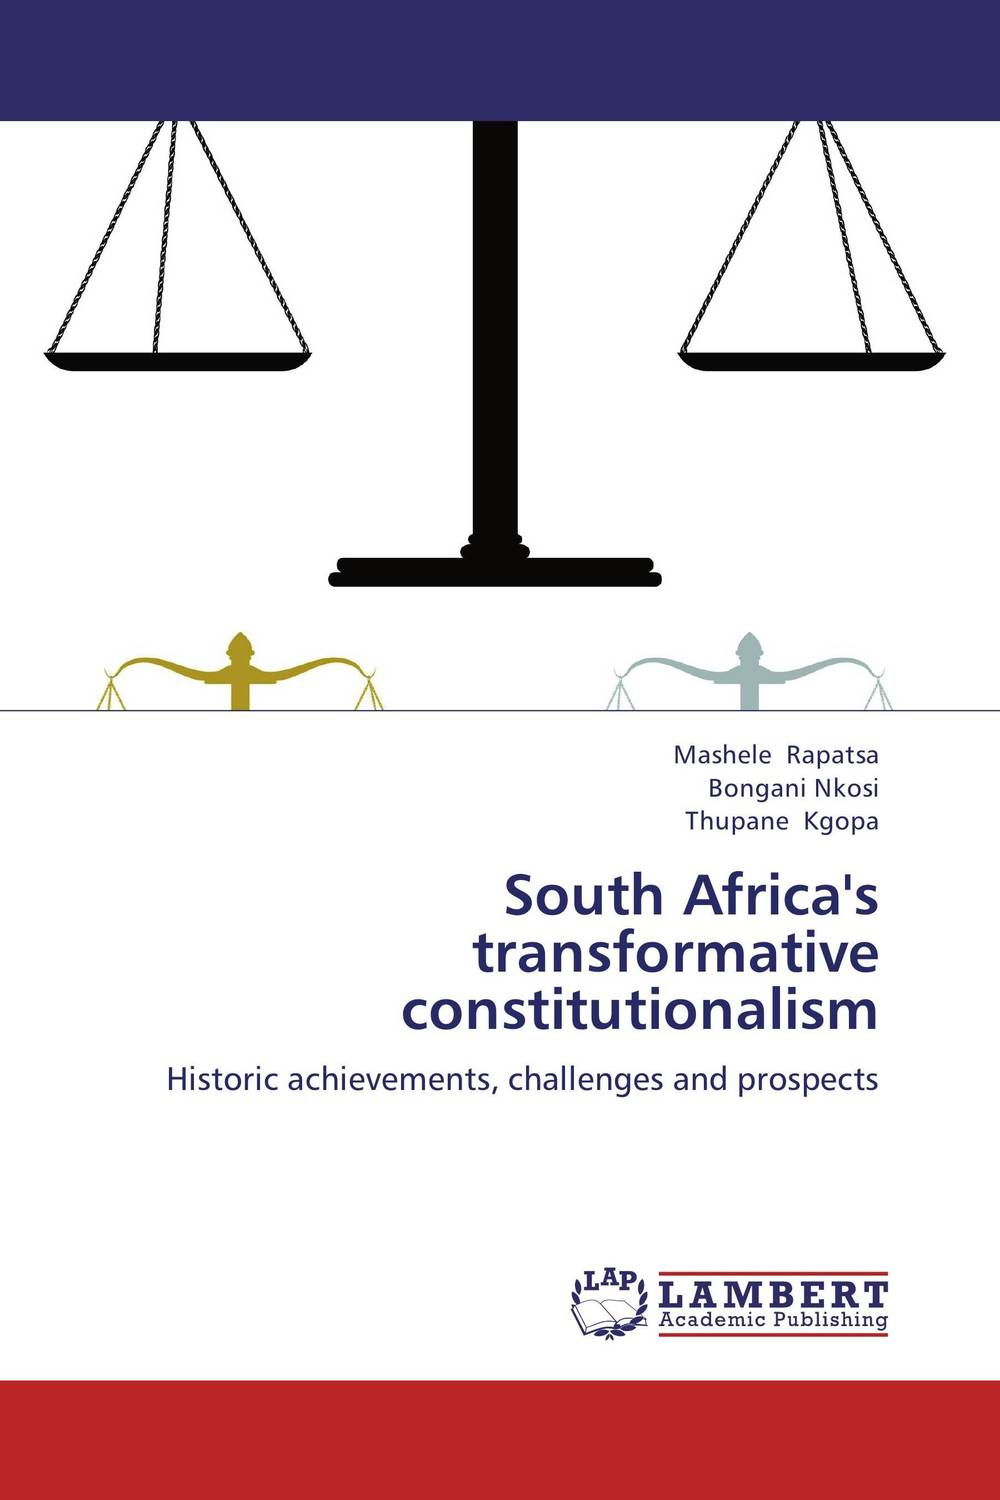 South Africa's transformative constitutionalism risk regulation and administrative constitutionalism